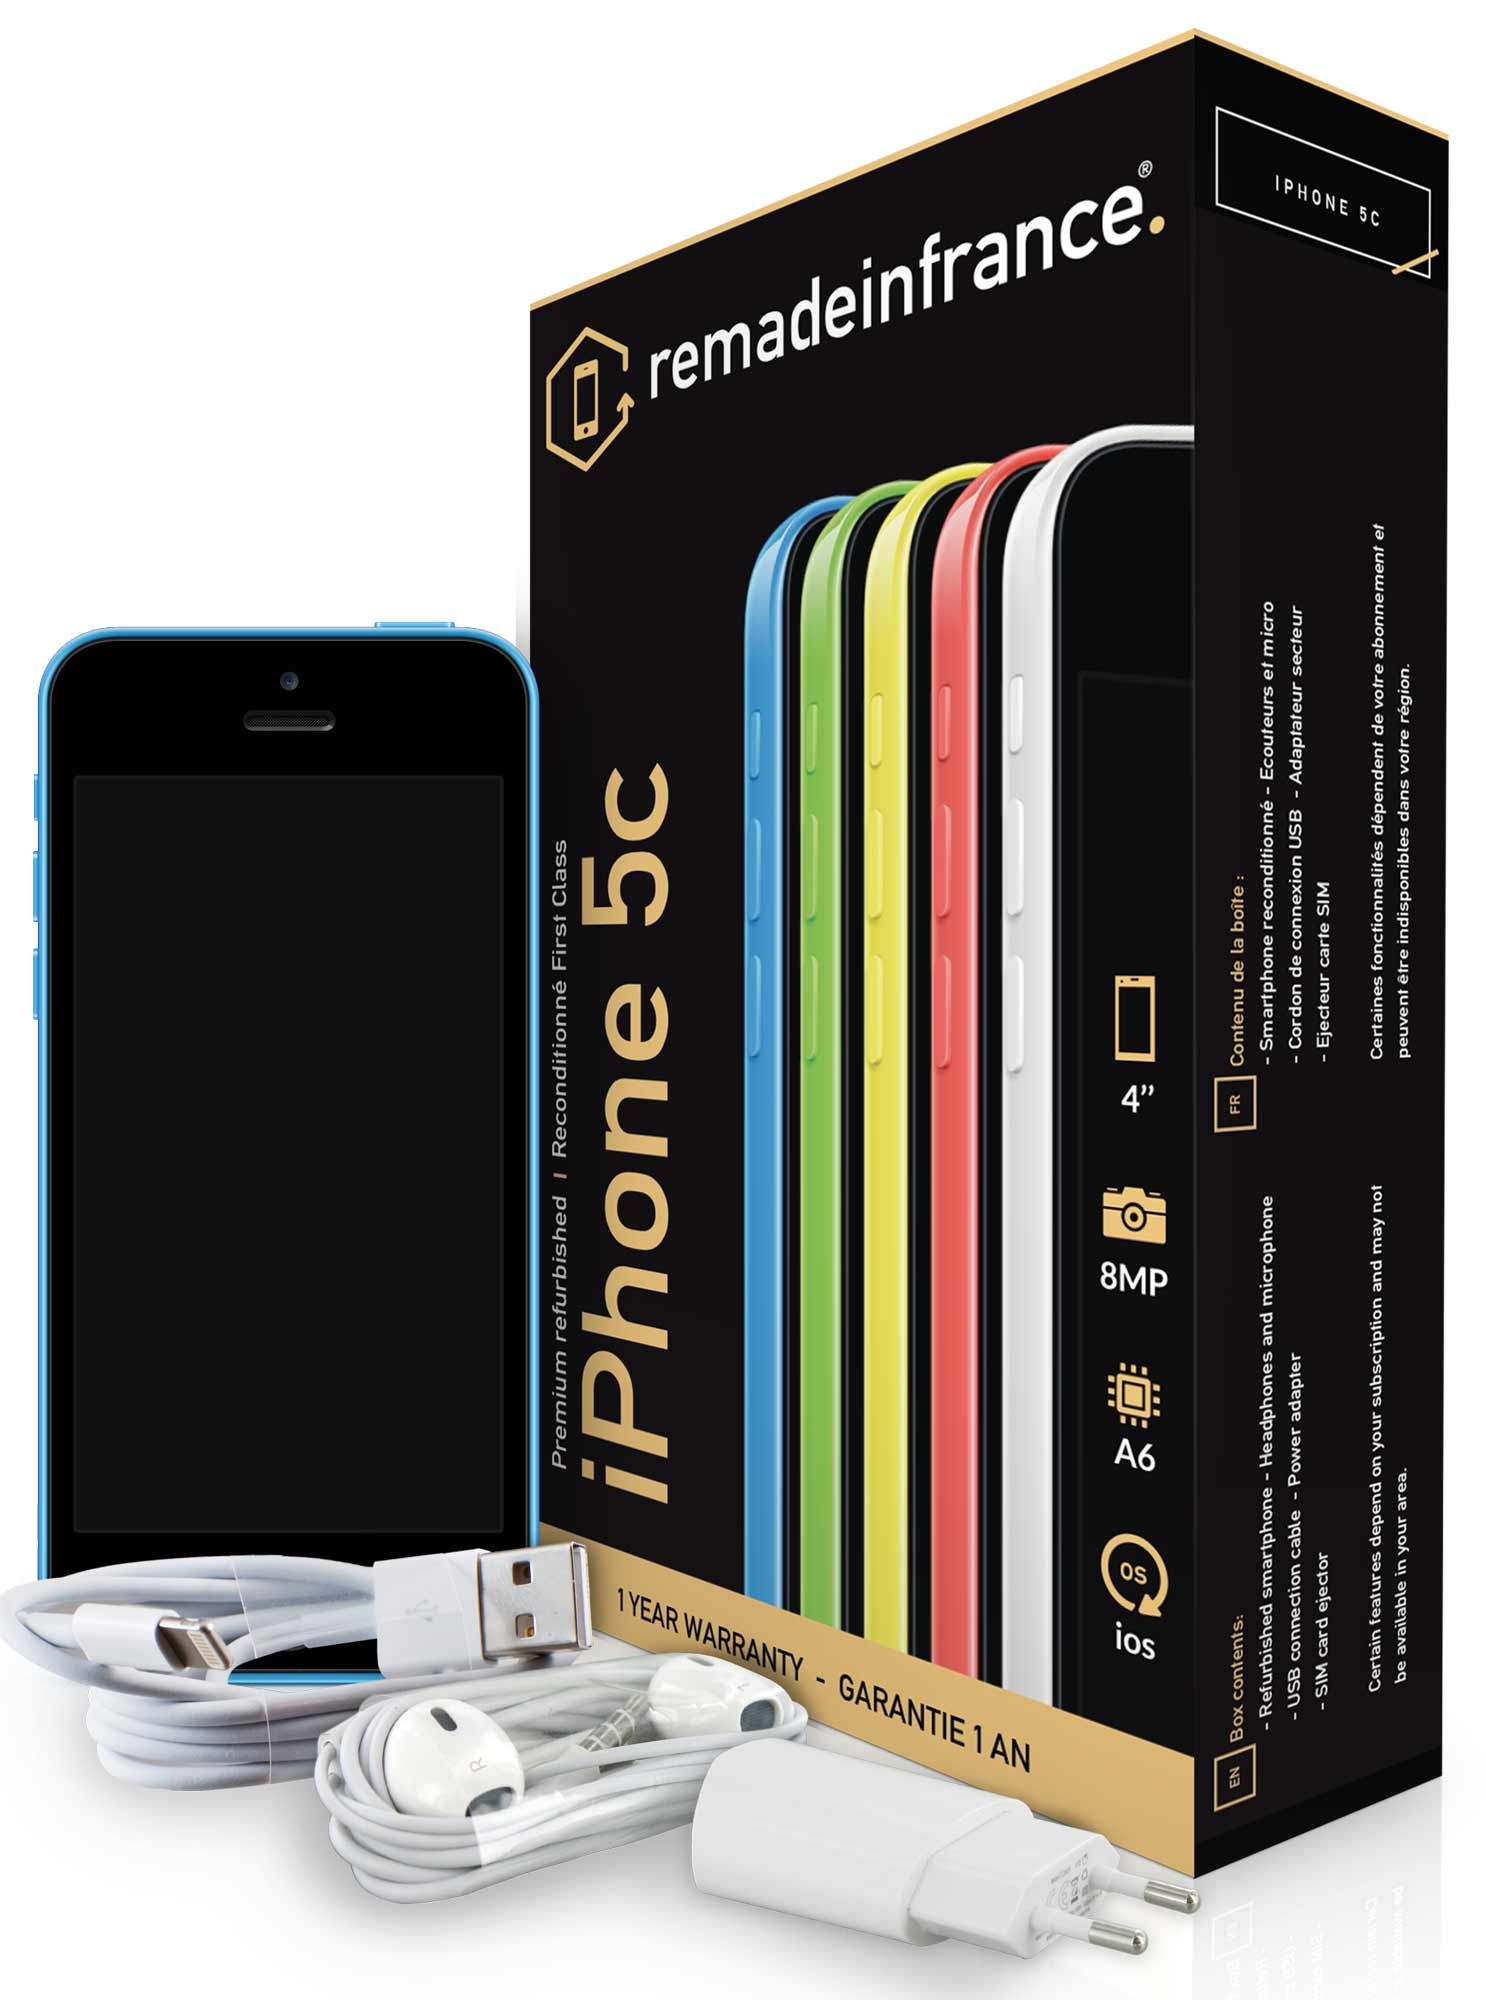 apple iphone reconditionn neuf iphone 5c. Black Bedroom Furniture Sets. Home Design Ideas